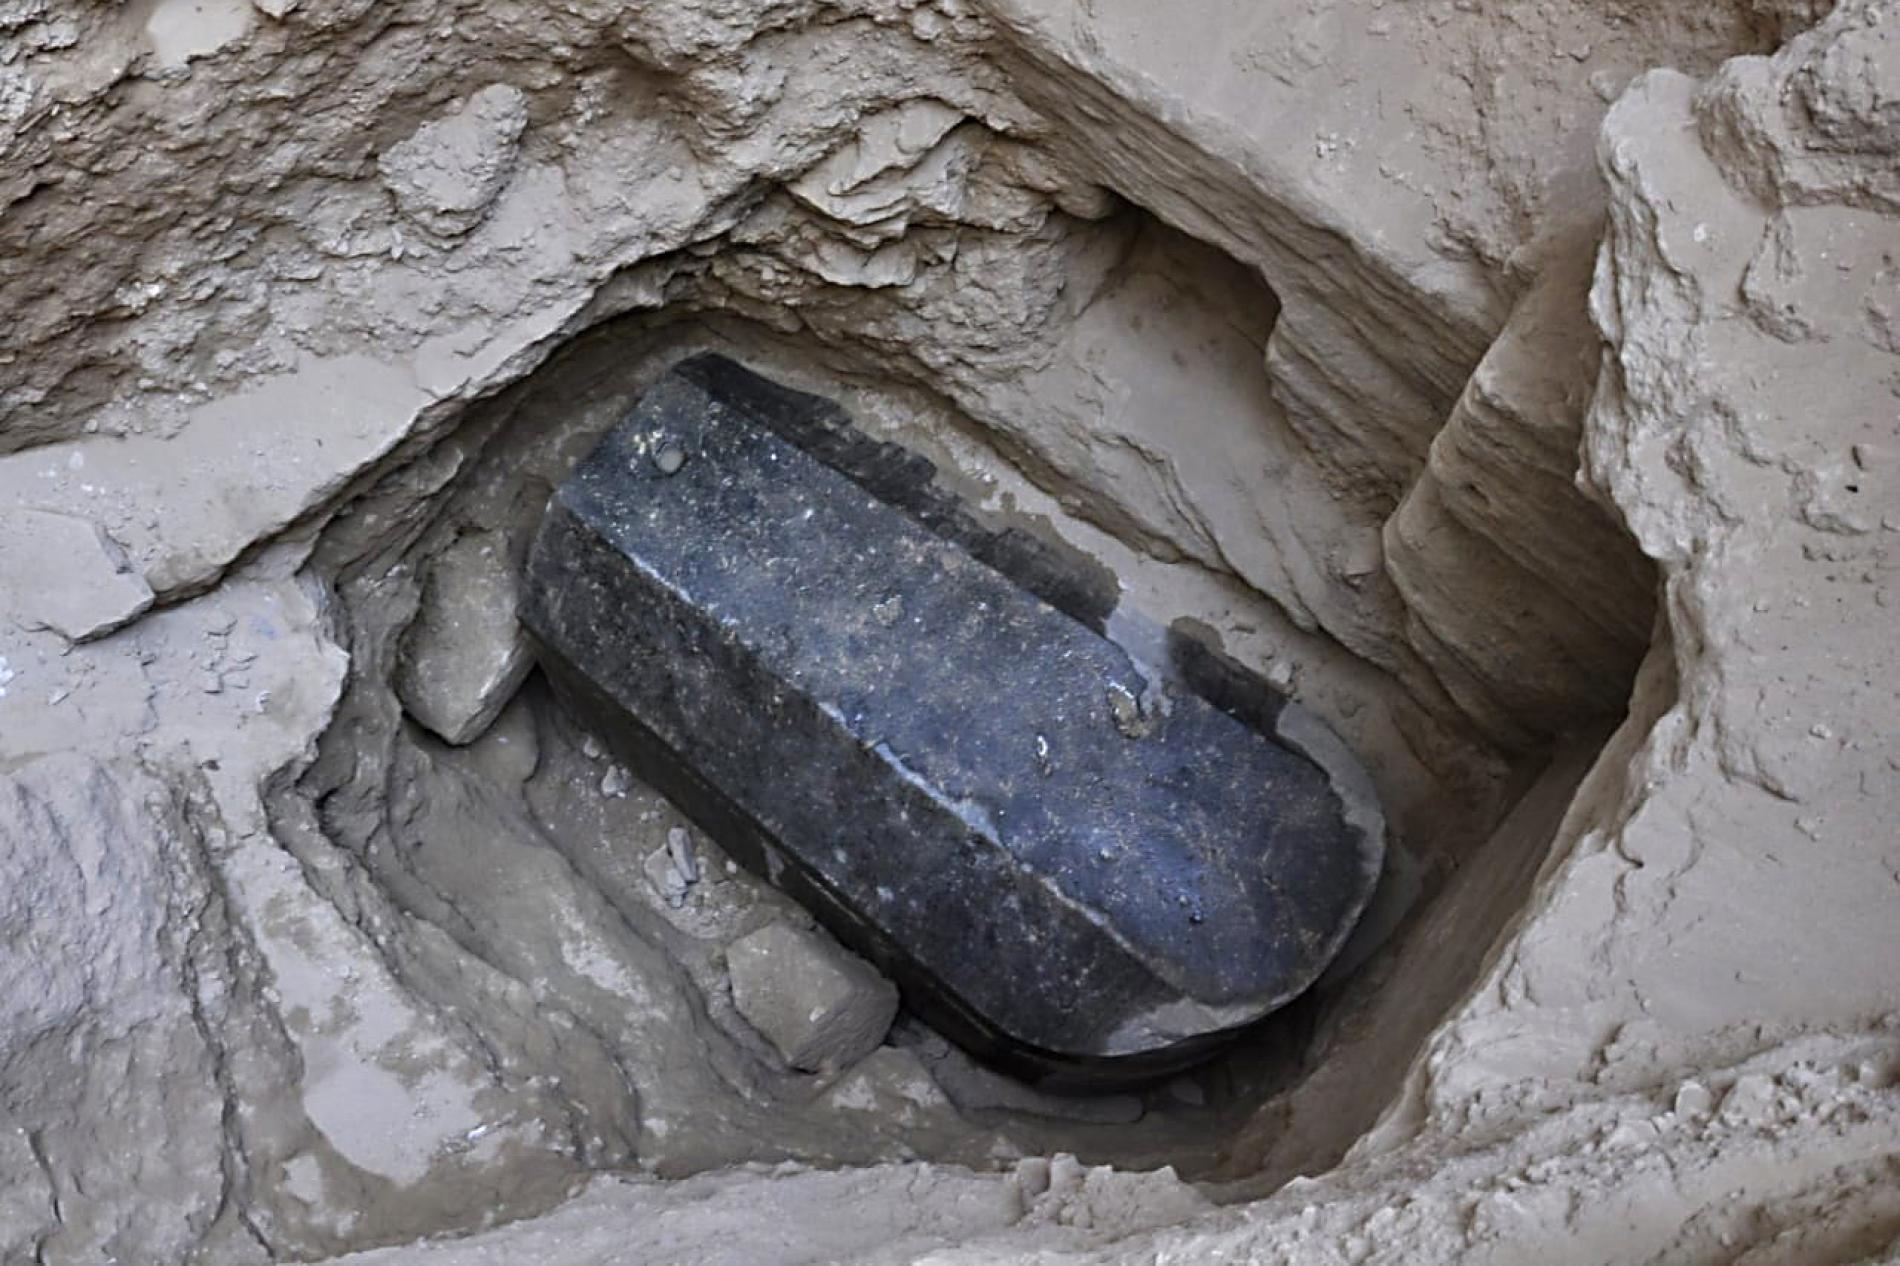 01 black sarcophagus gettyimages 989057656.adapt .1900.1